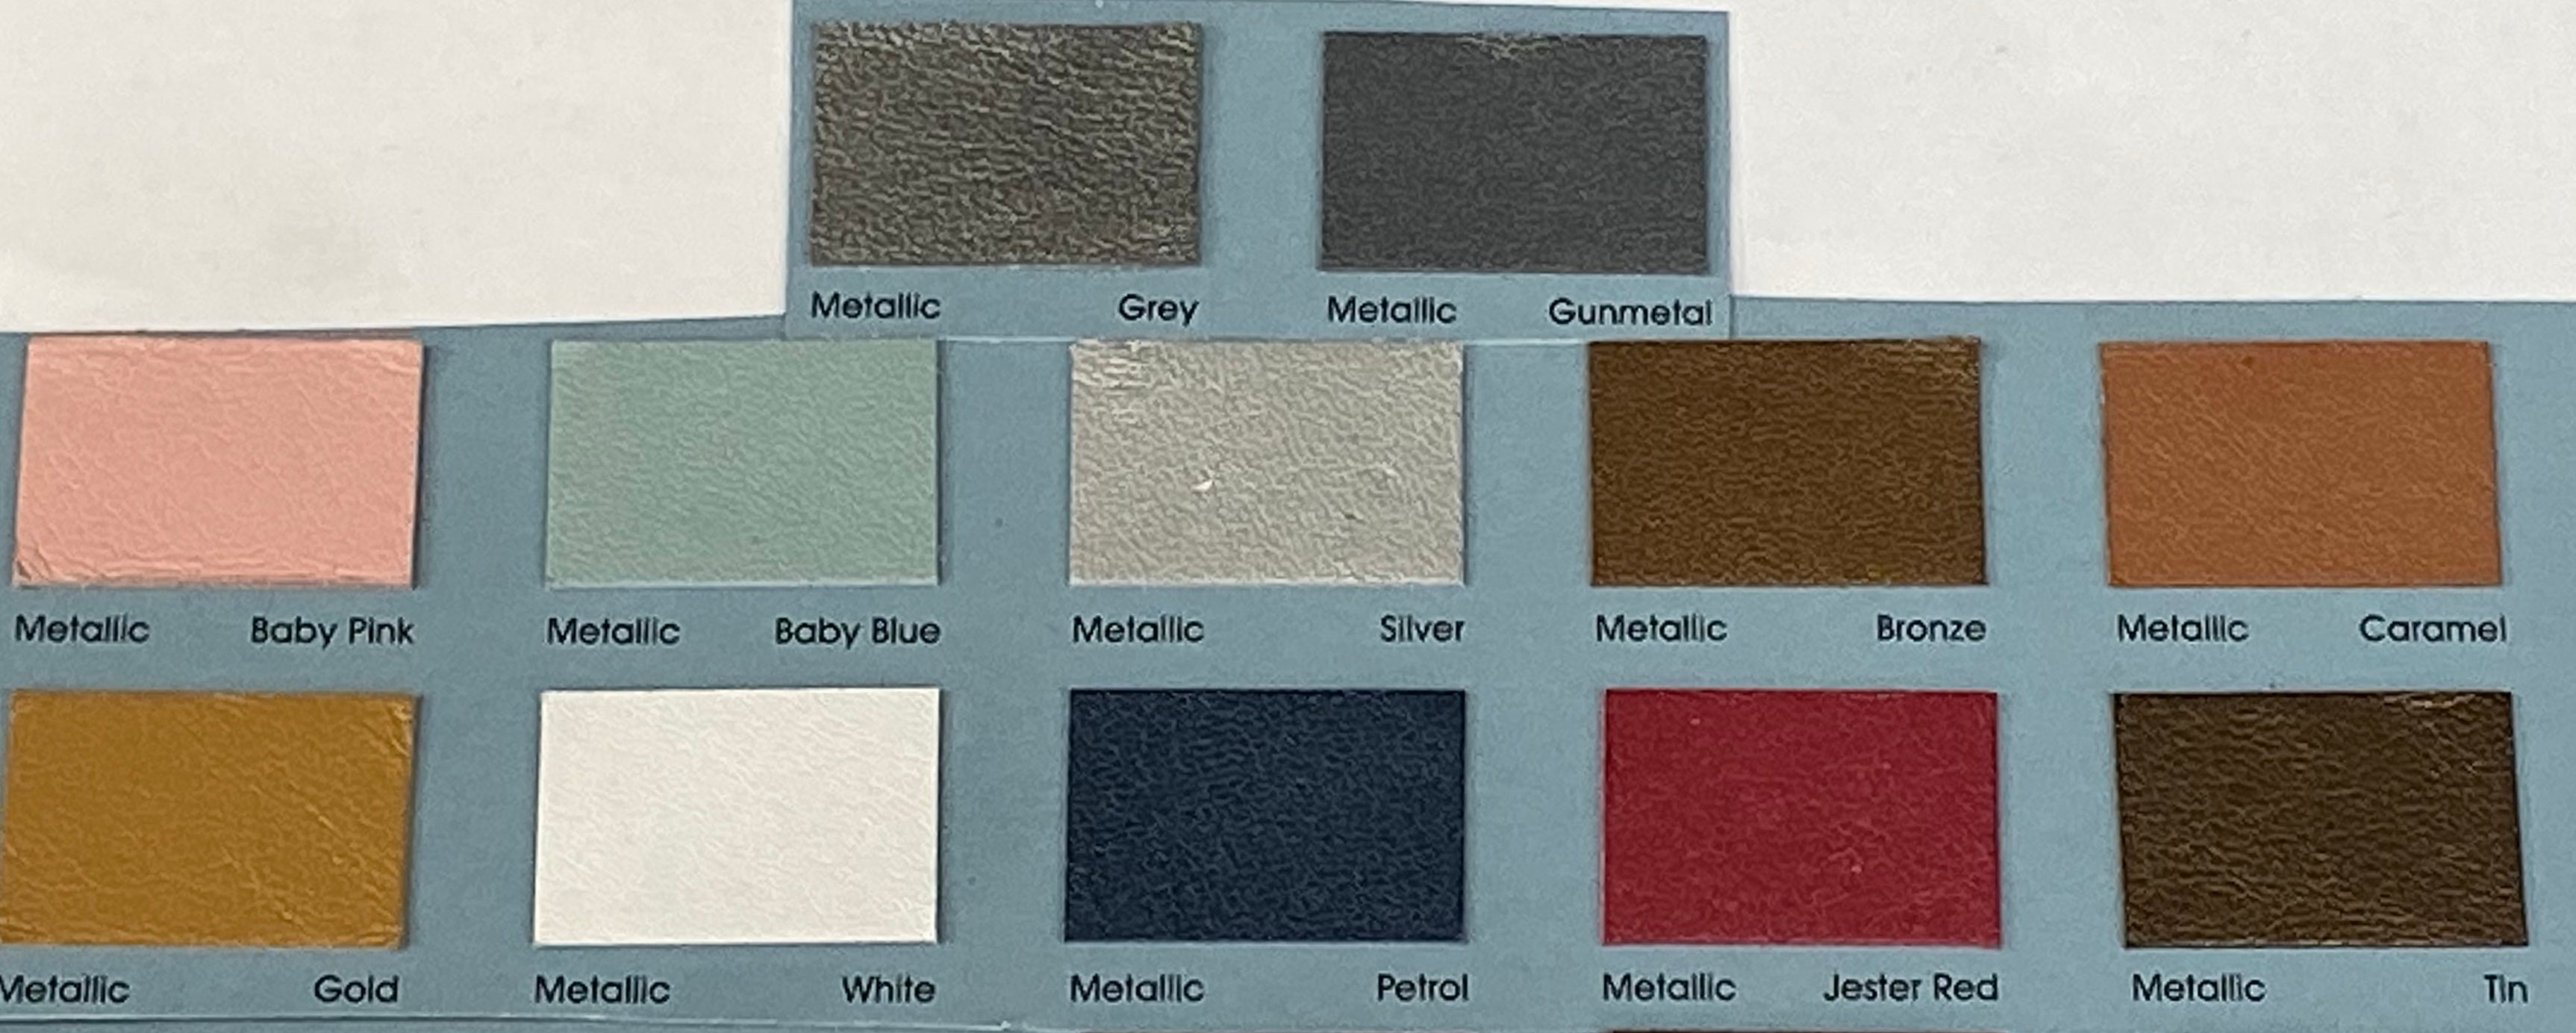 Metallic Gunmetal Grey Leather Skin : Italian Lamb Nappa (0.6-0.7 mm). Perfect for Clothing, Leather Jackets, Leather Crafts, Leather Handbags.